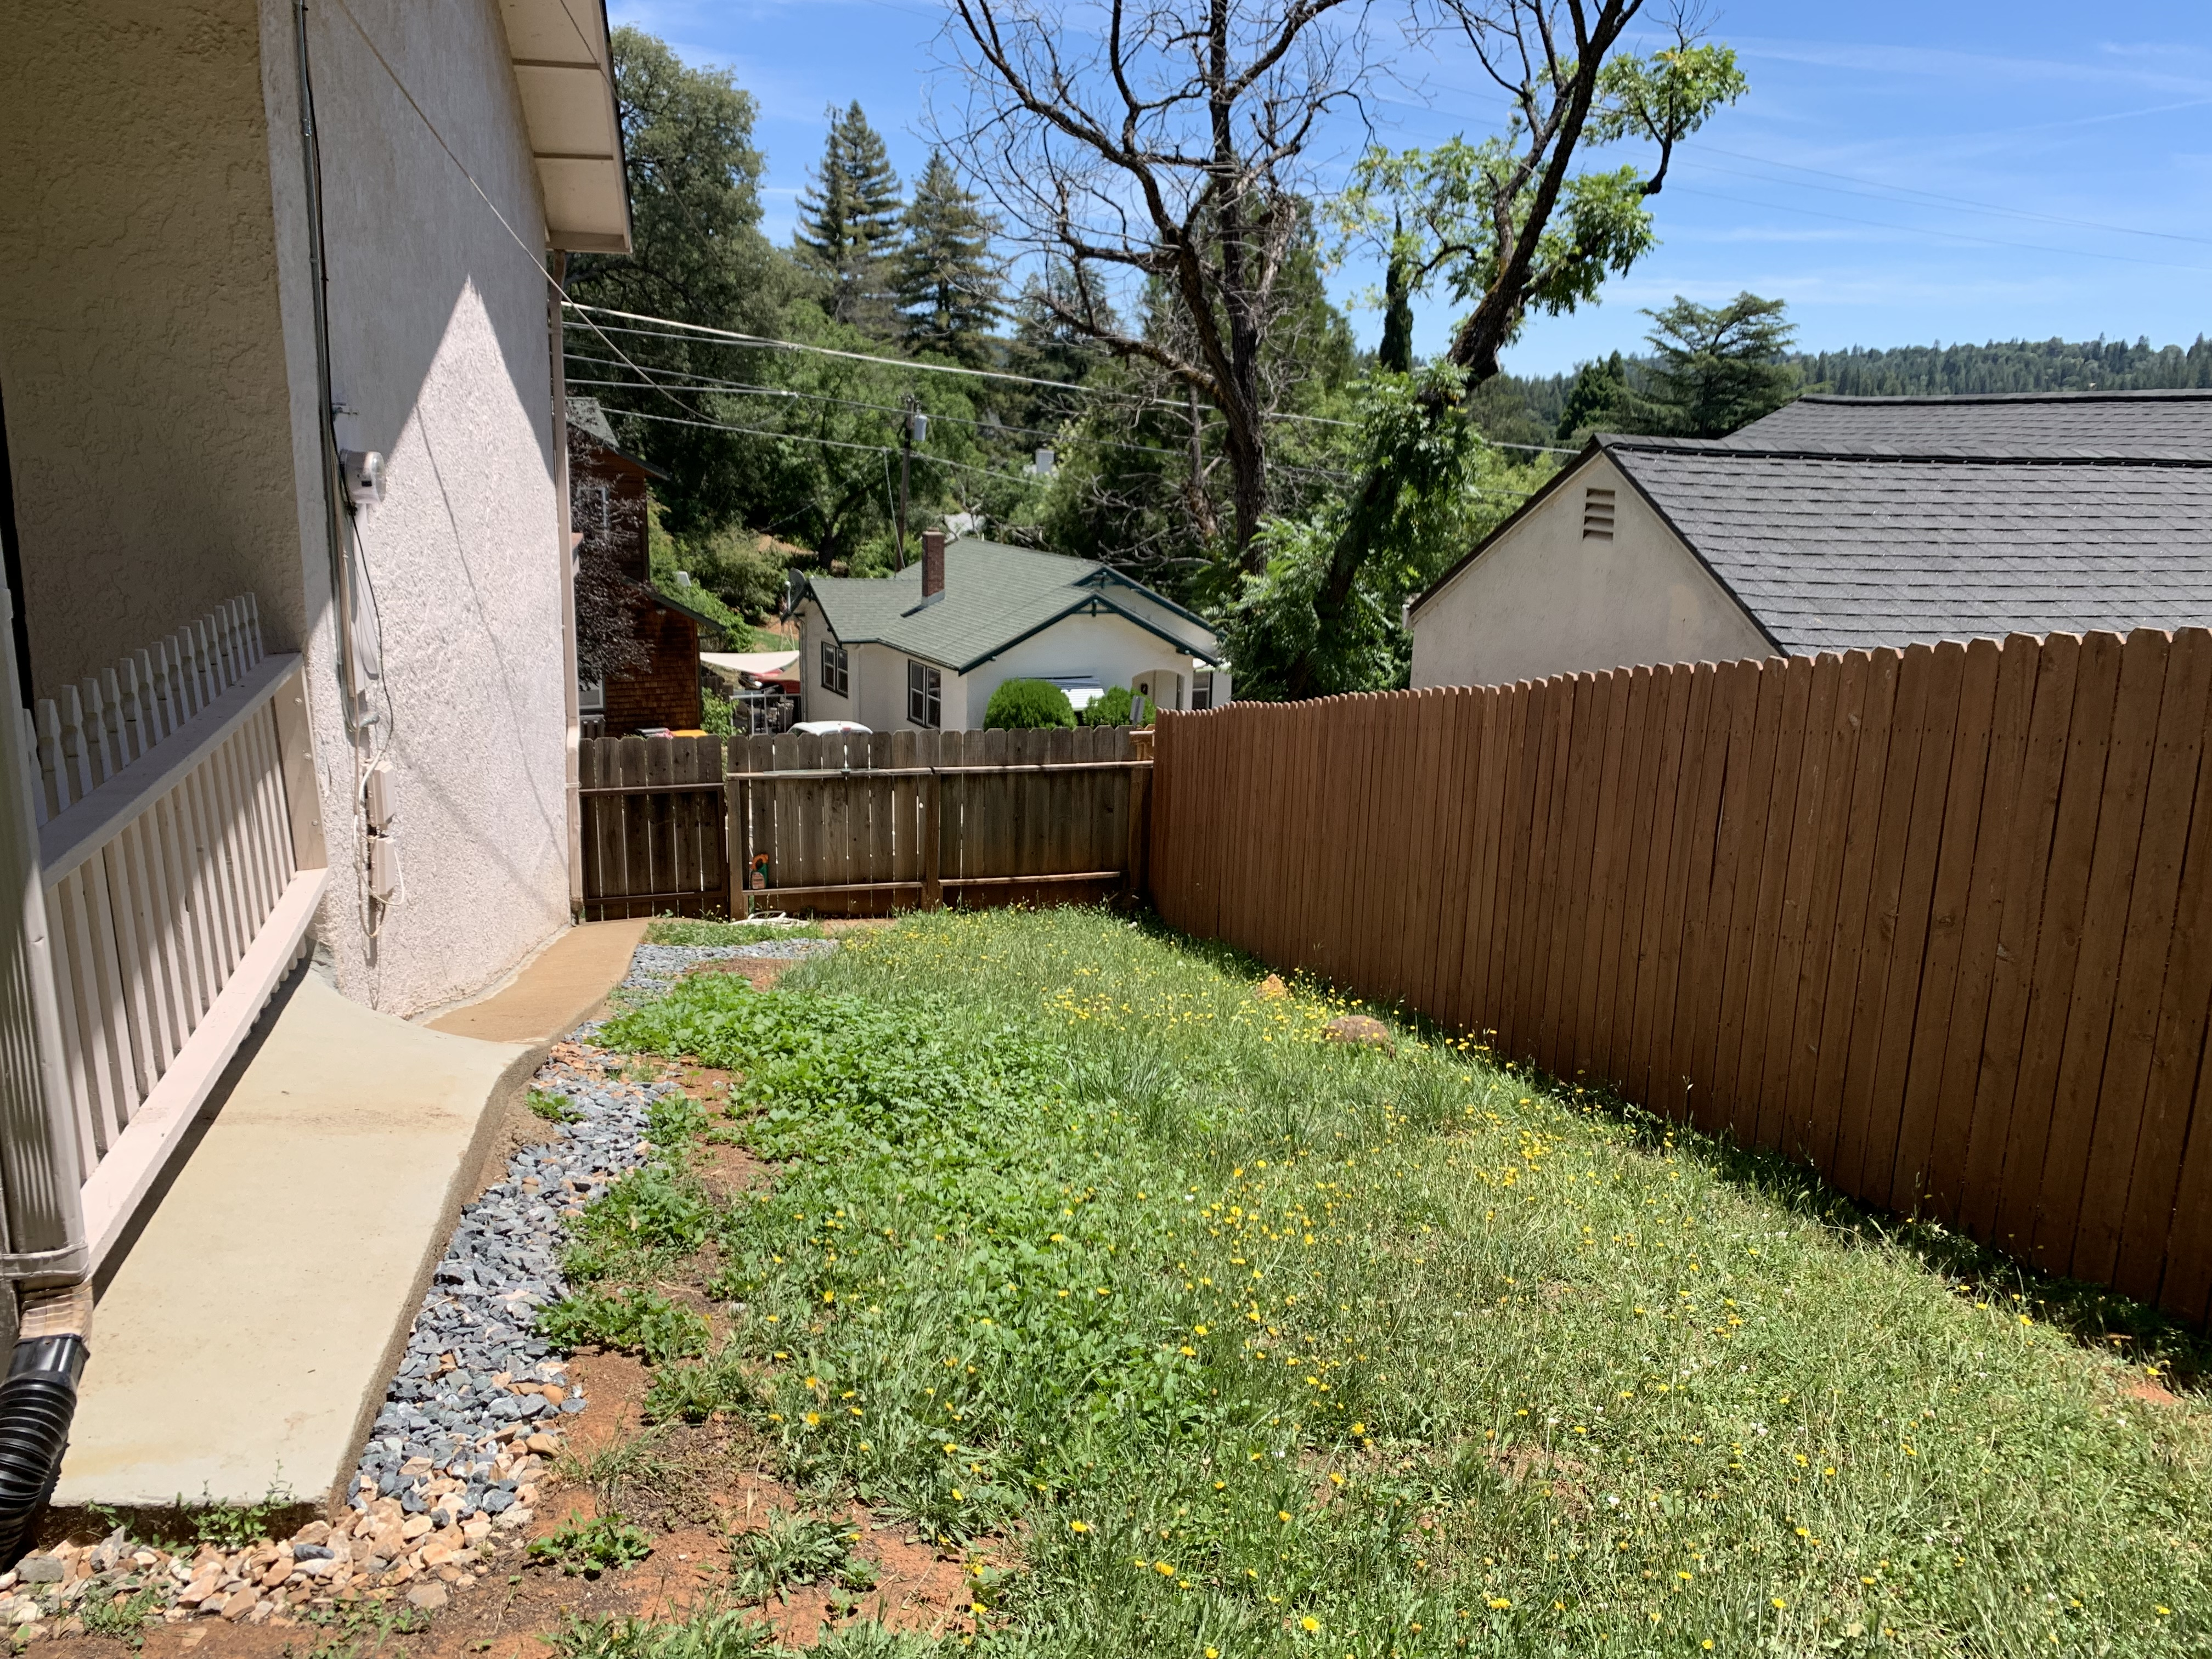 steve baker, graeme grant, Placerville realty, house for rent, home for rent, property manager, property management company, 762 Chamberlain Street - Placerville, Exterior View